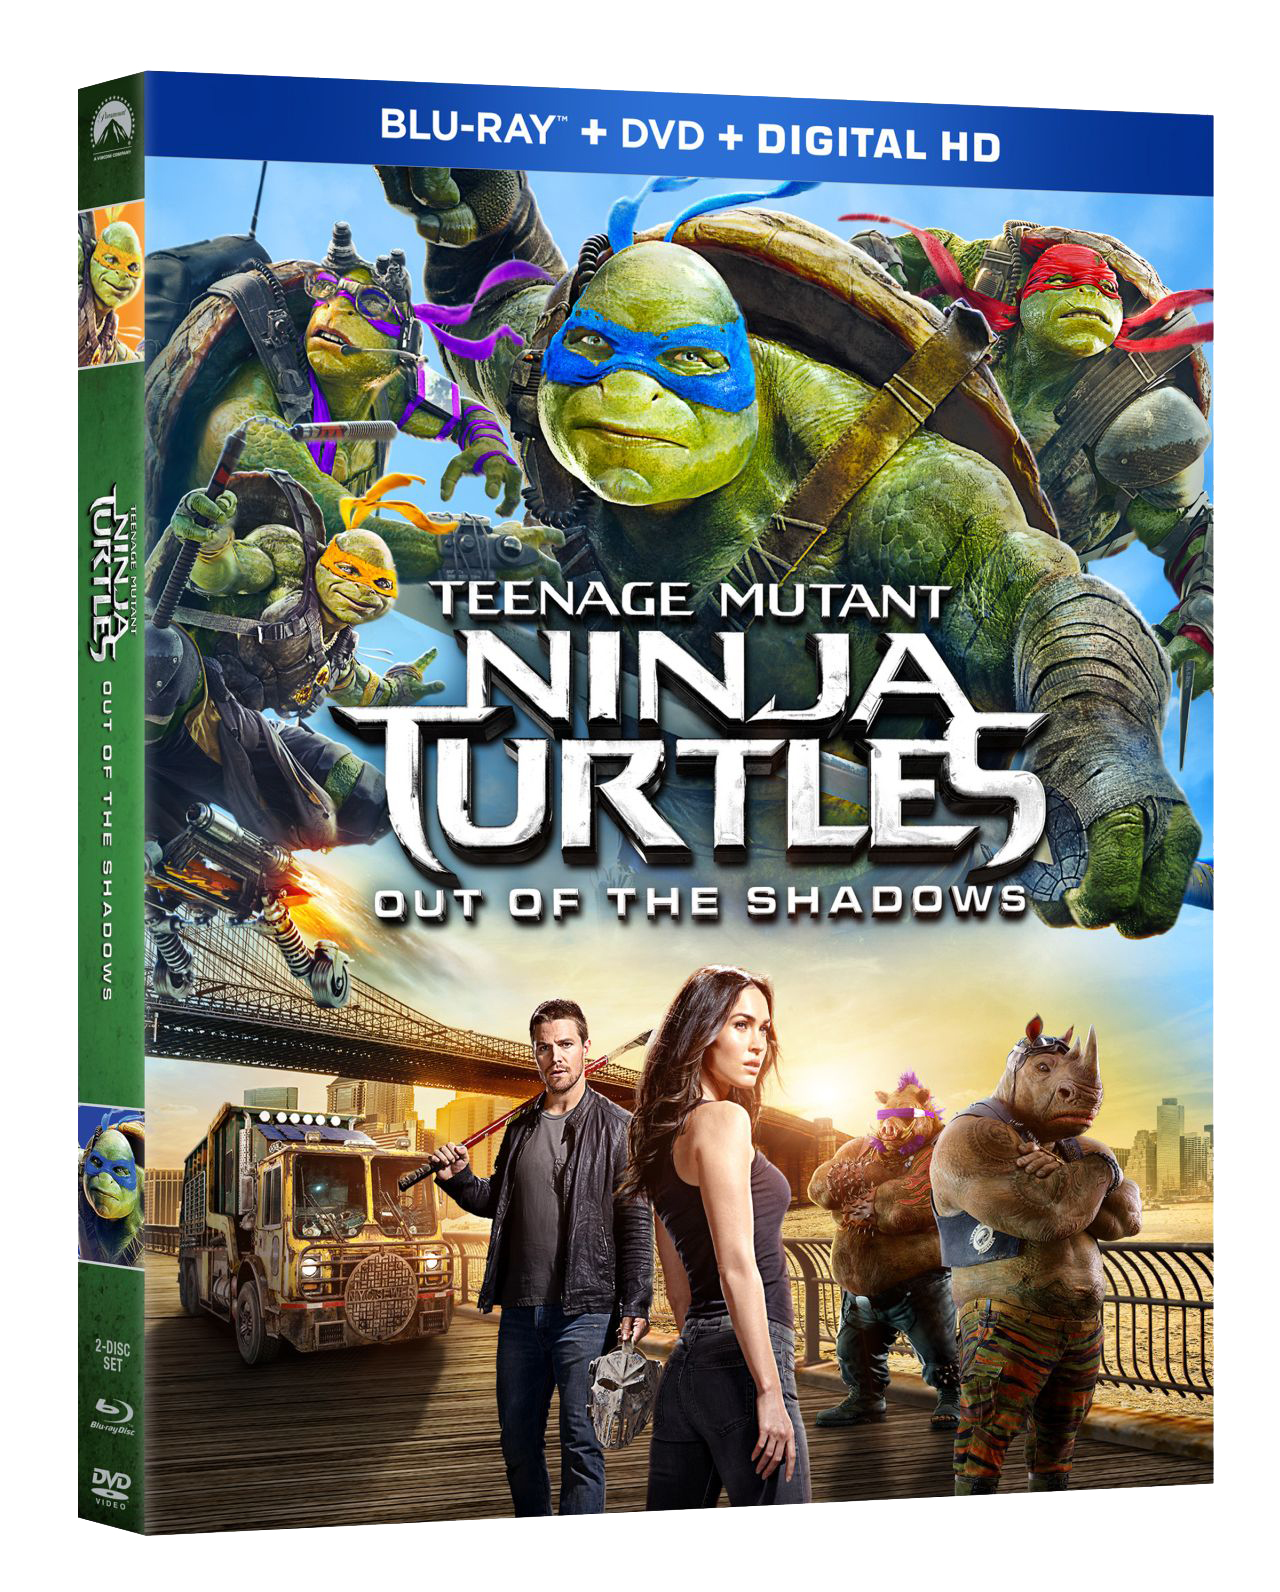 turtledvd